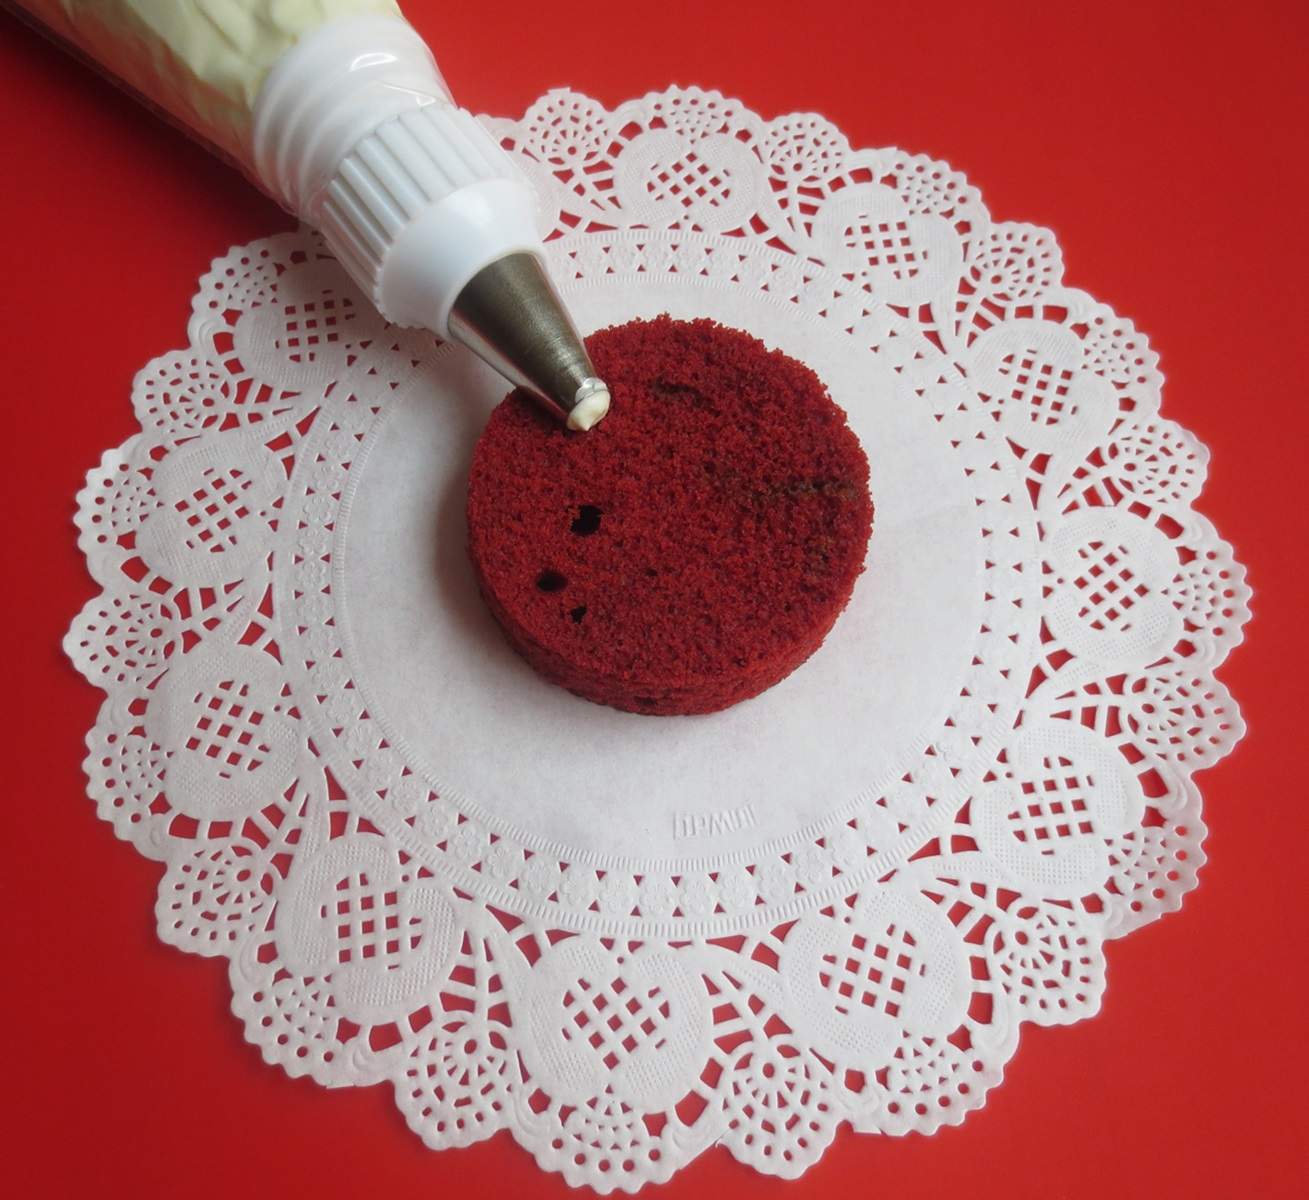 Decorando los mini Red Velvet cakes. Aroma de chocolate.